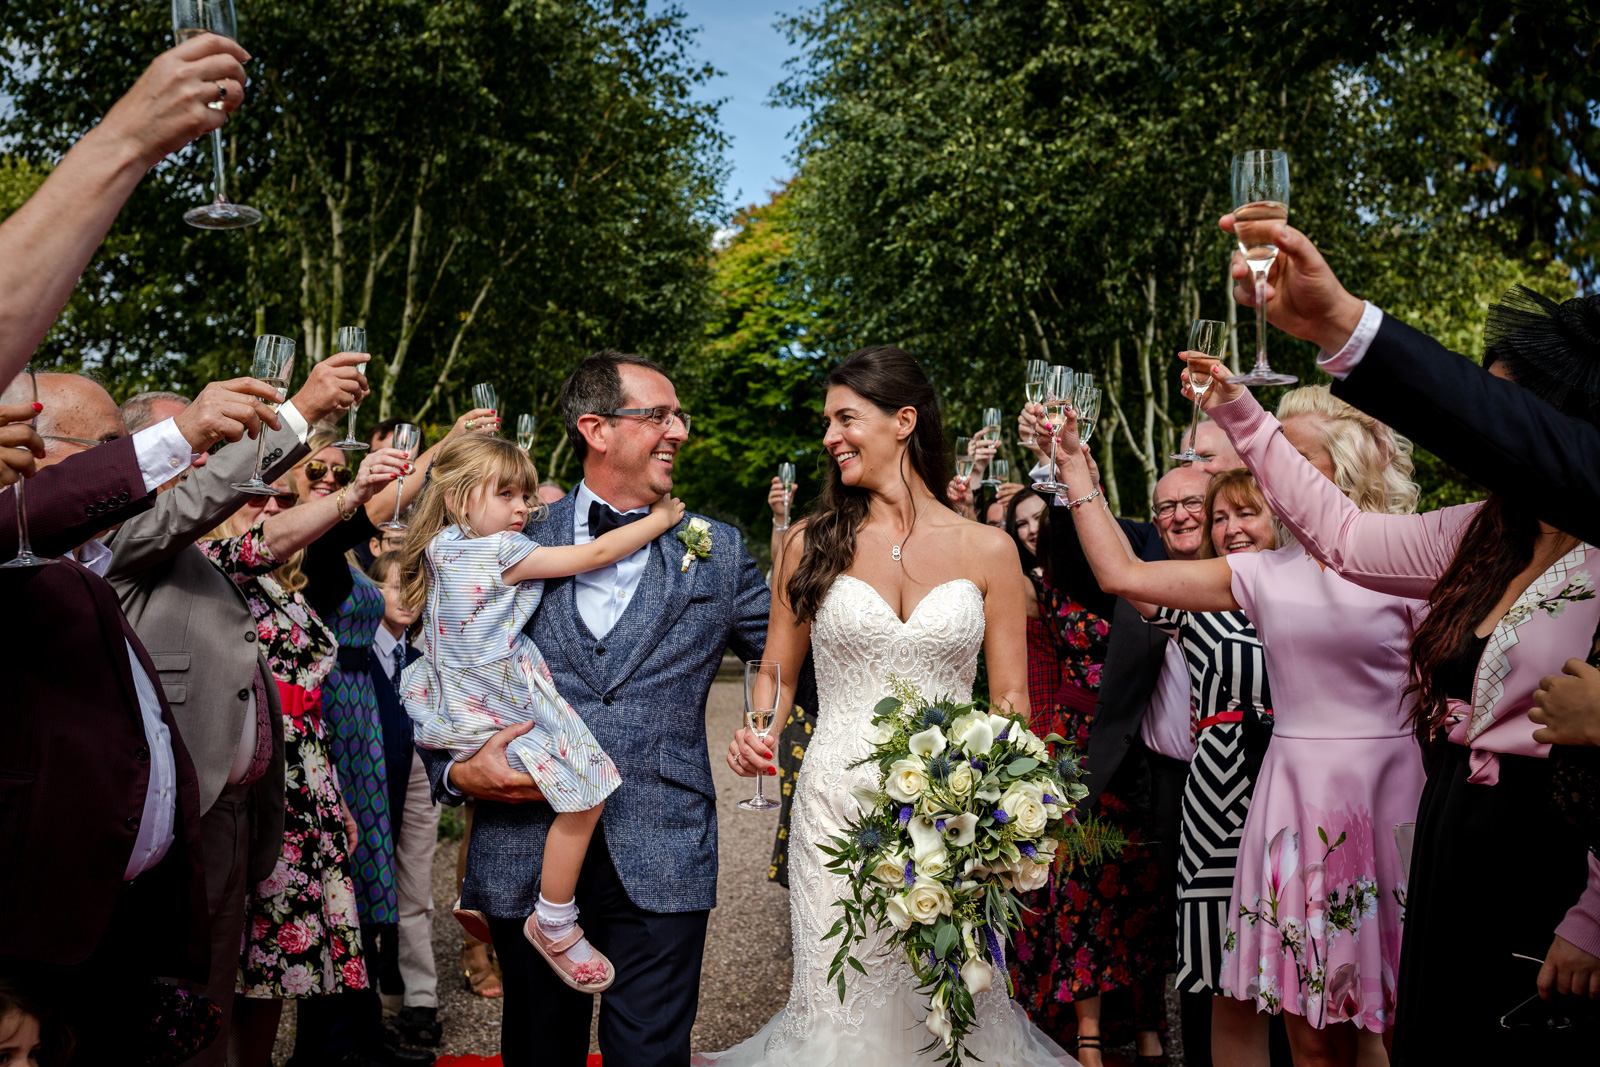 Capesthorne Hall Wedding in Macclesfield